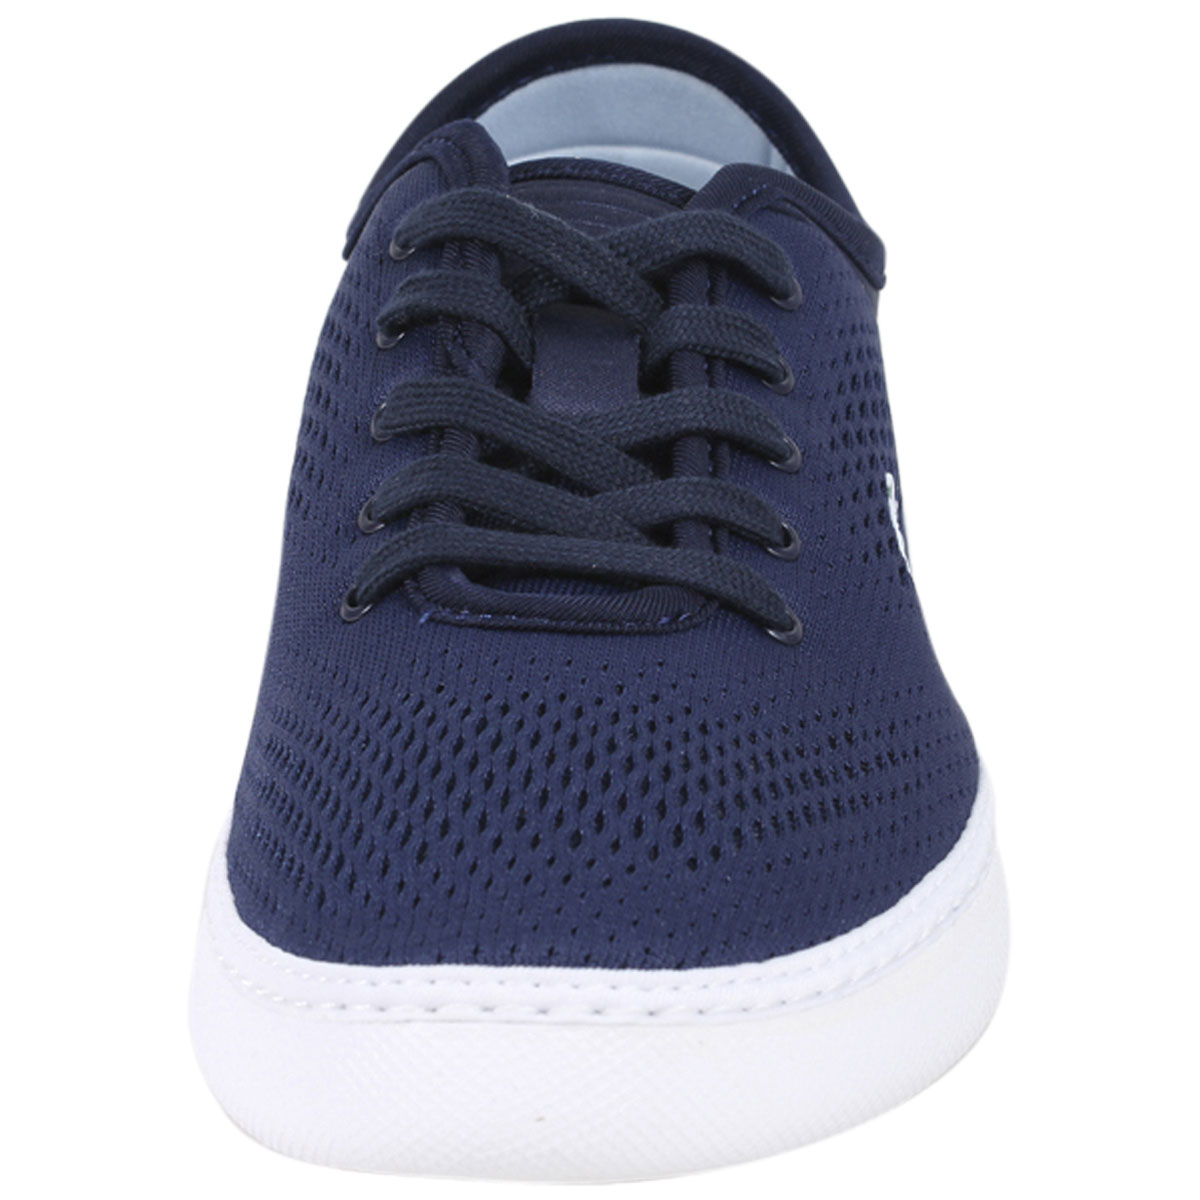 Lacoste-Men-039-s-L-Ydro-Lace-118-Trainers-Sneakers-Shoes thumbnail 8